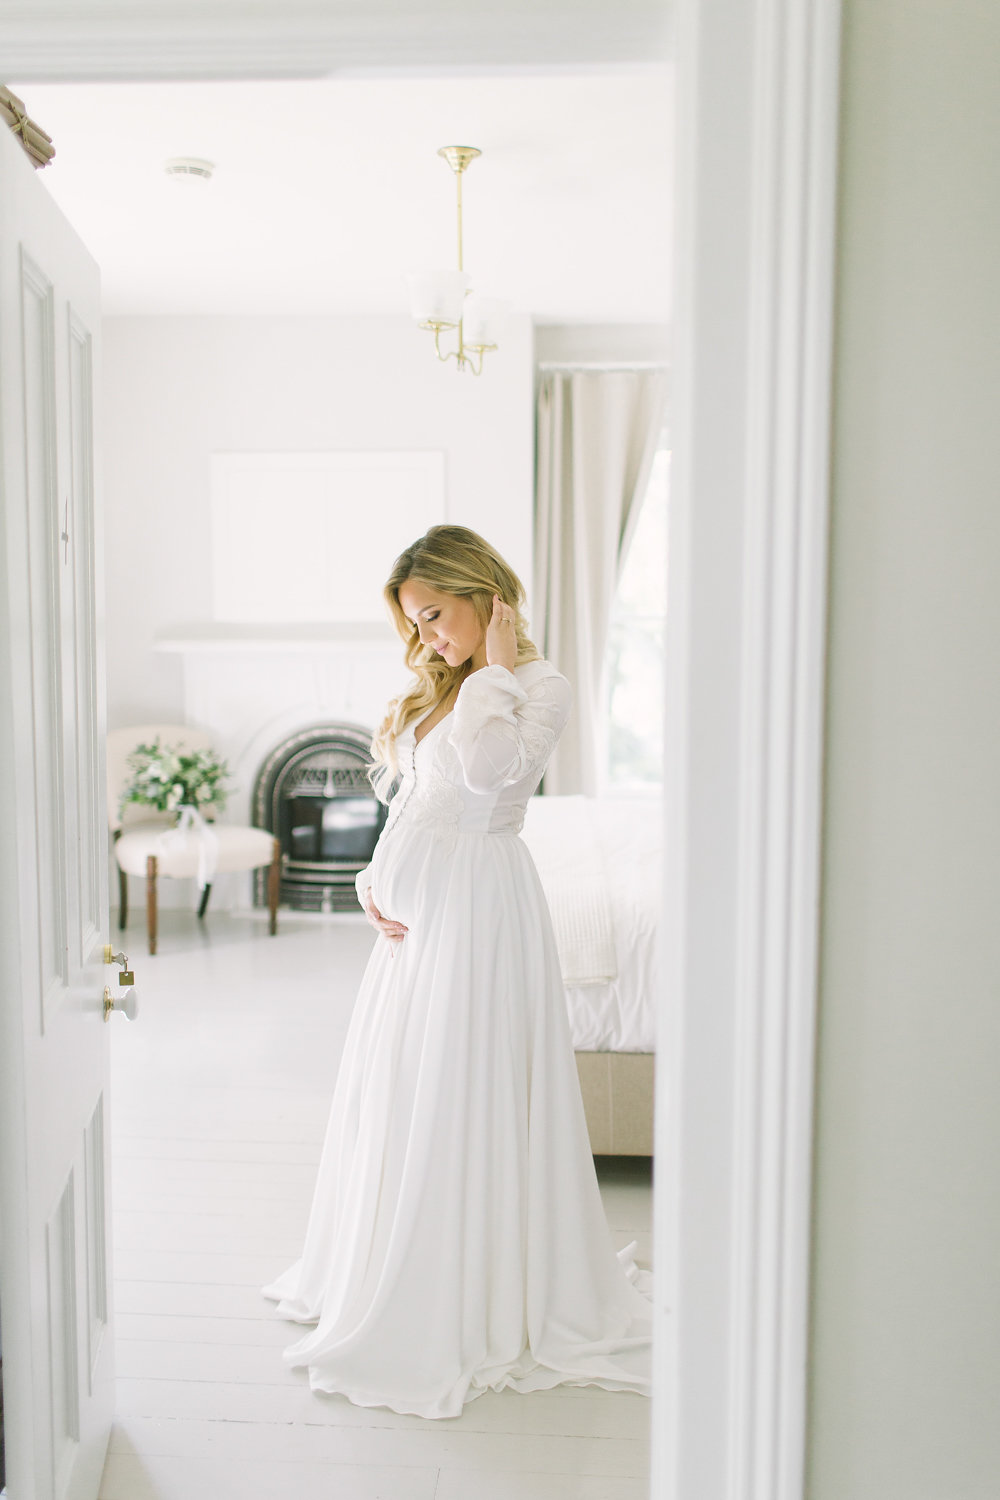 How to Look Elegant in Your Maternity Photos now on Cottage Hill cottagehill.co21.jpg